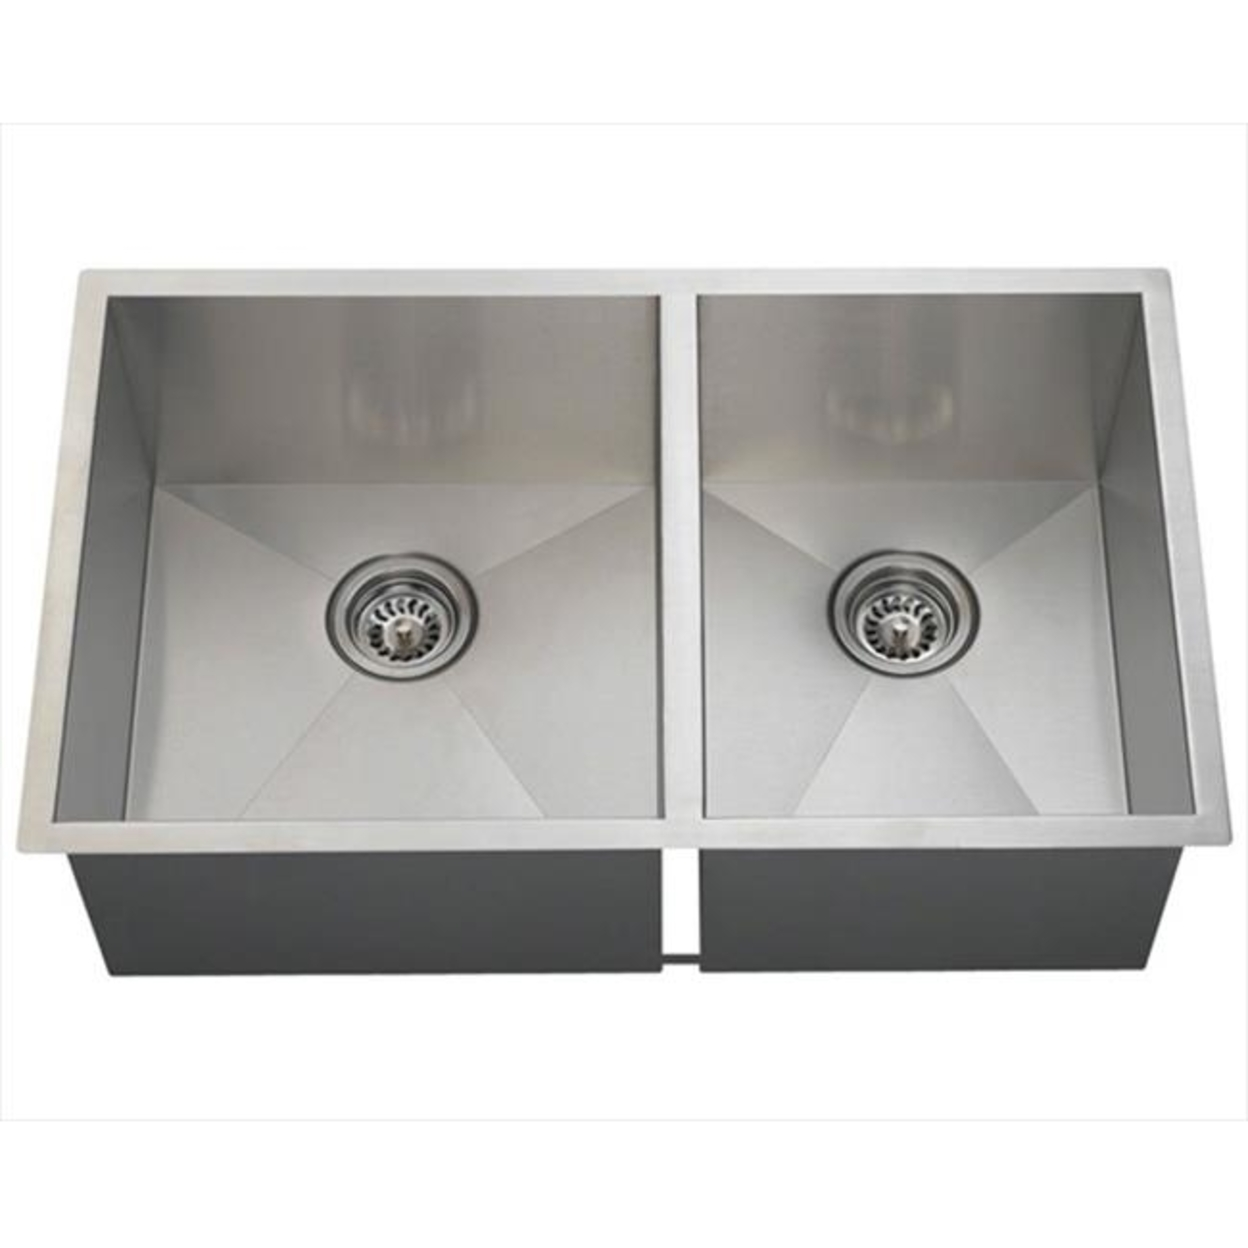 MR Direct 3322Ol 90 Degree Double Bowl Rectangular Stainless Steel Sink 5a3d410e2a00e45b087458af